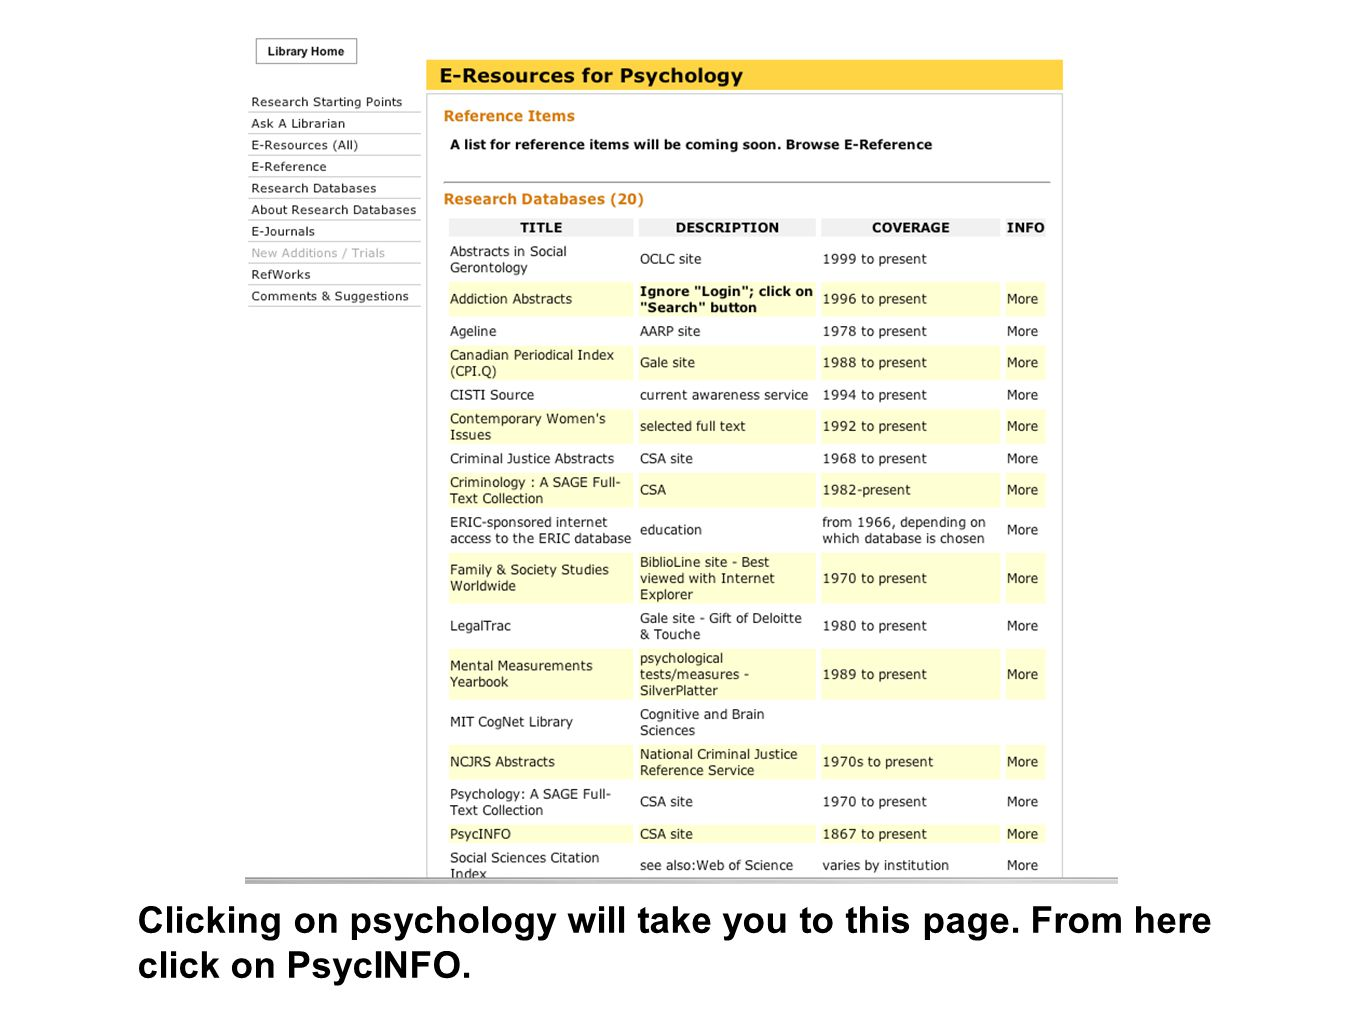 Clicking on psychology will take you to this page. From here click on PsycINFO.